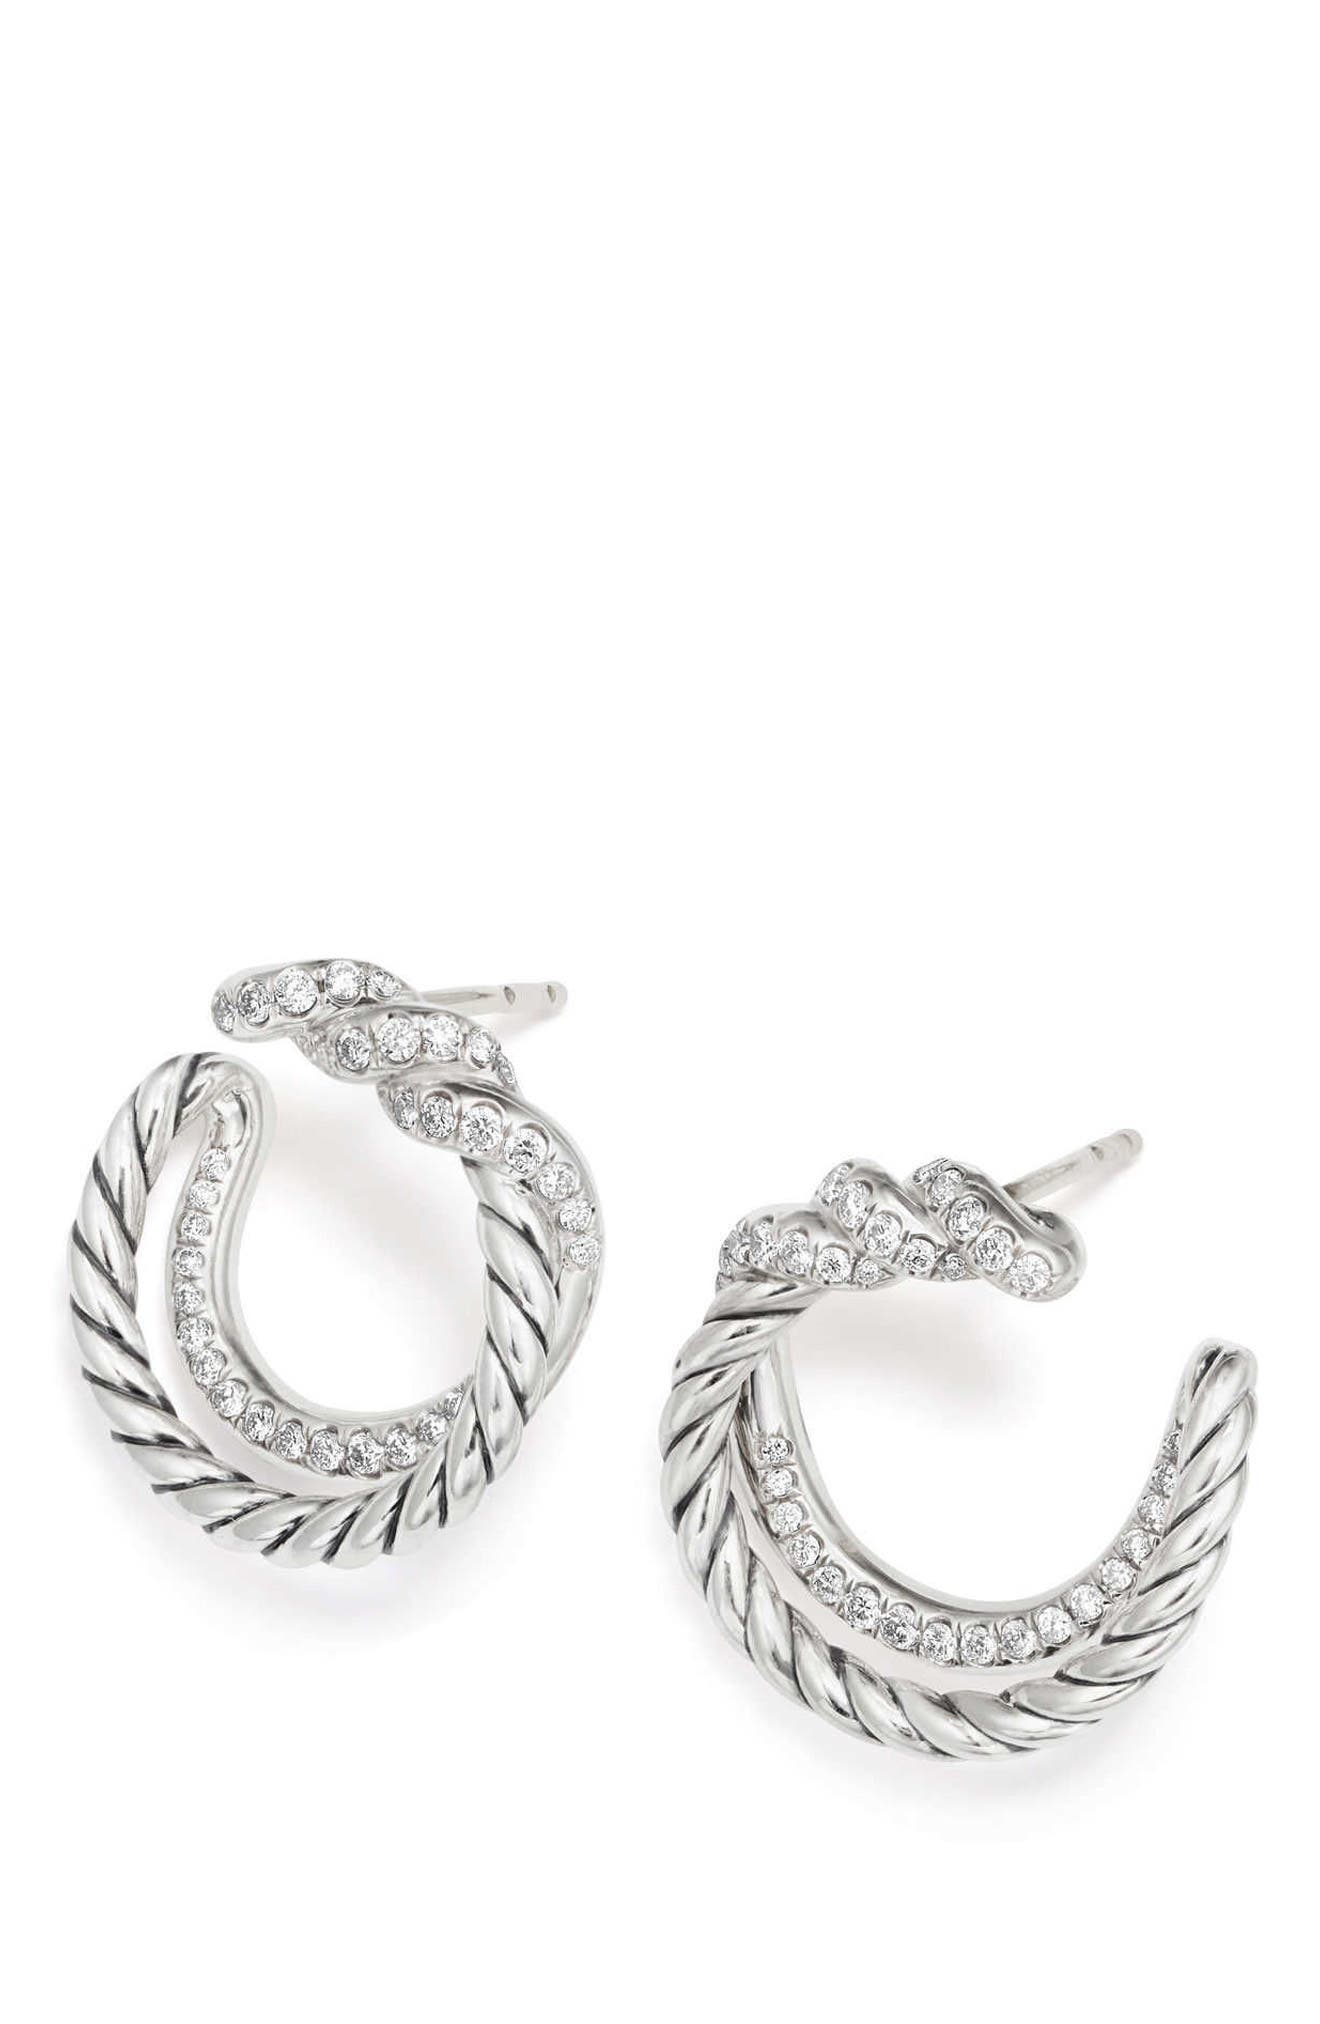 Continuance Hoop Earrings with Diamonds,                             Alternate thumbnail 2, color,                             Silver/ Diamond